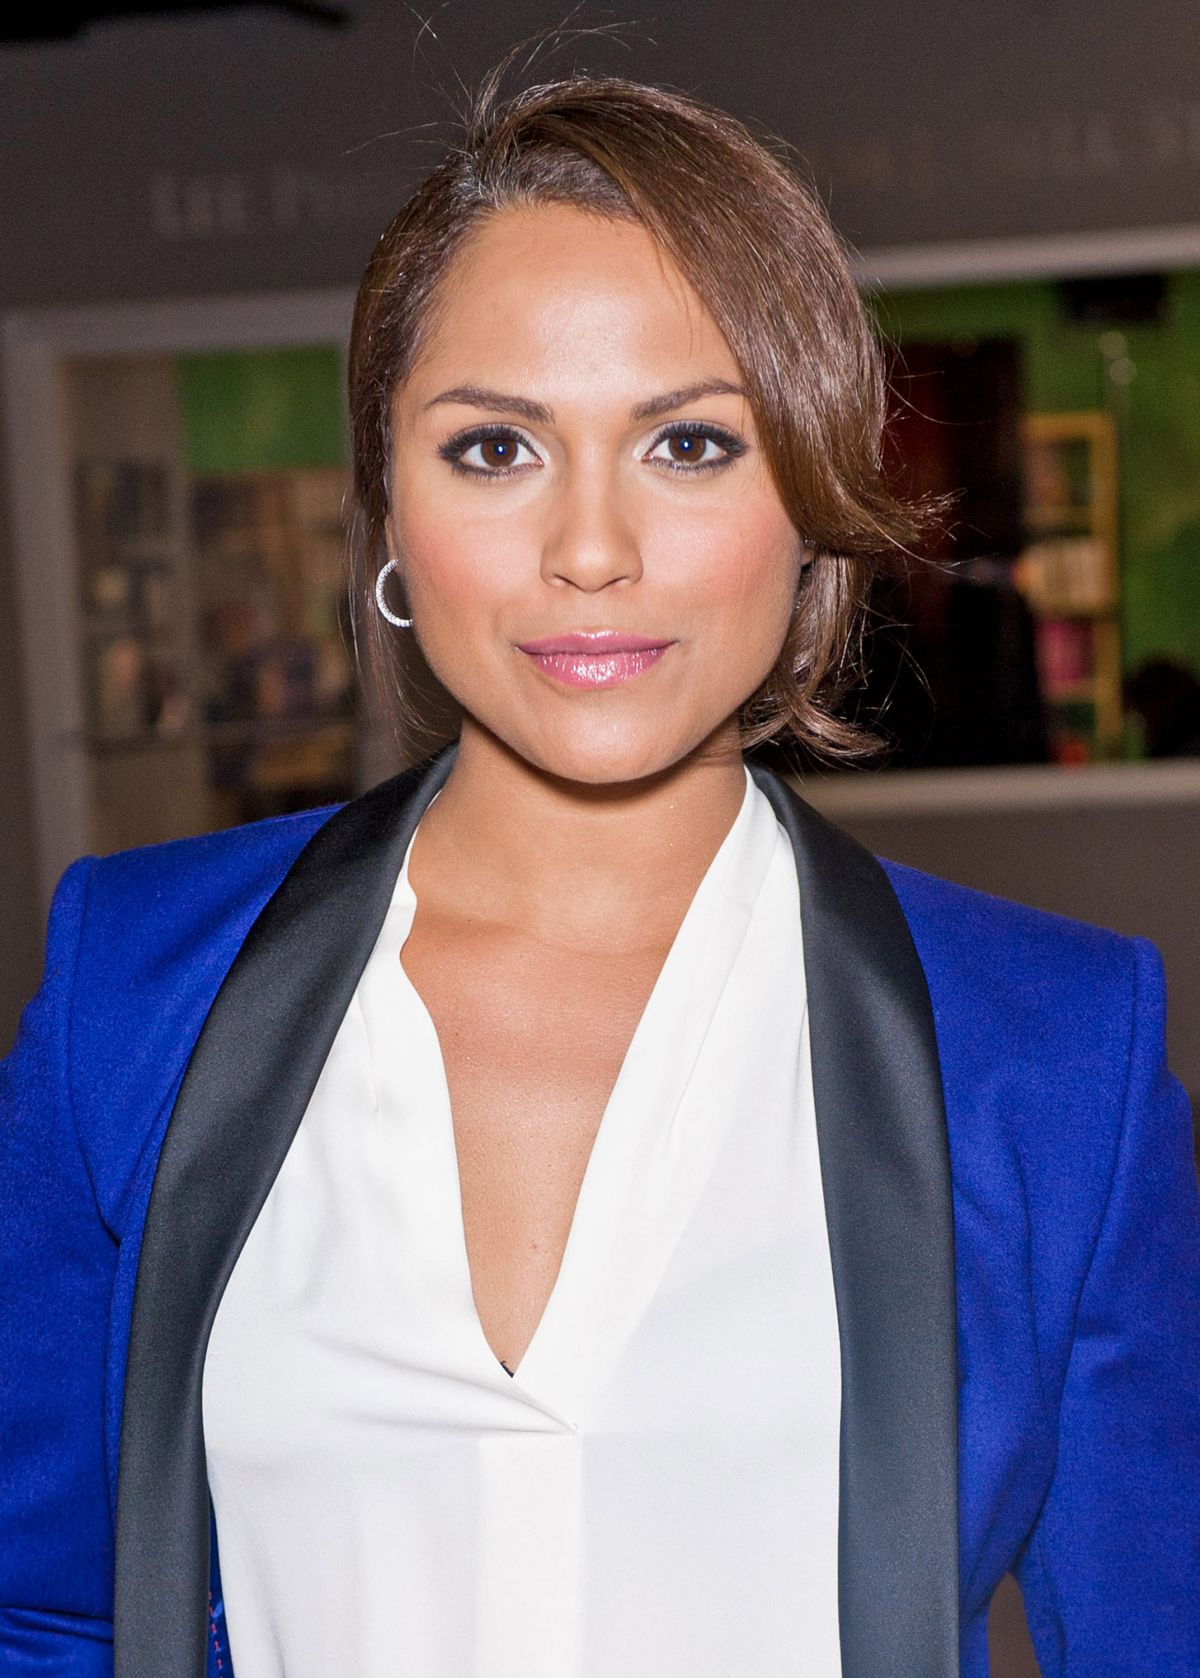 MONICA RAYMUND at Chicago P.D Portrait Session in New York